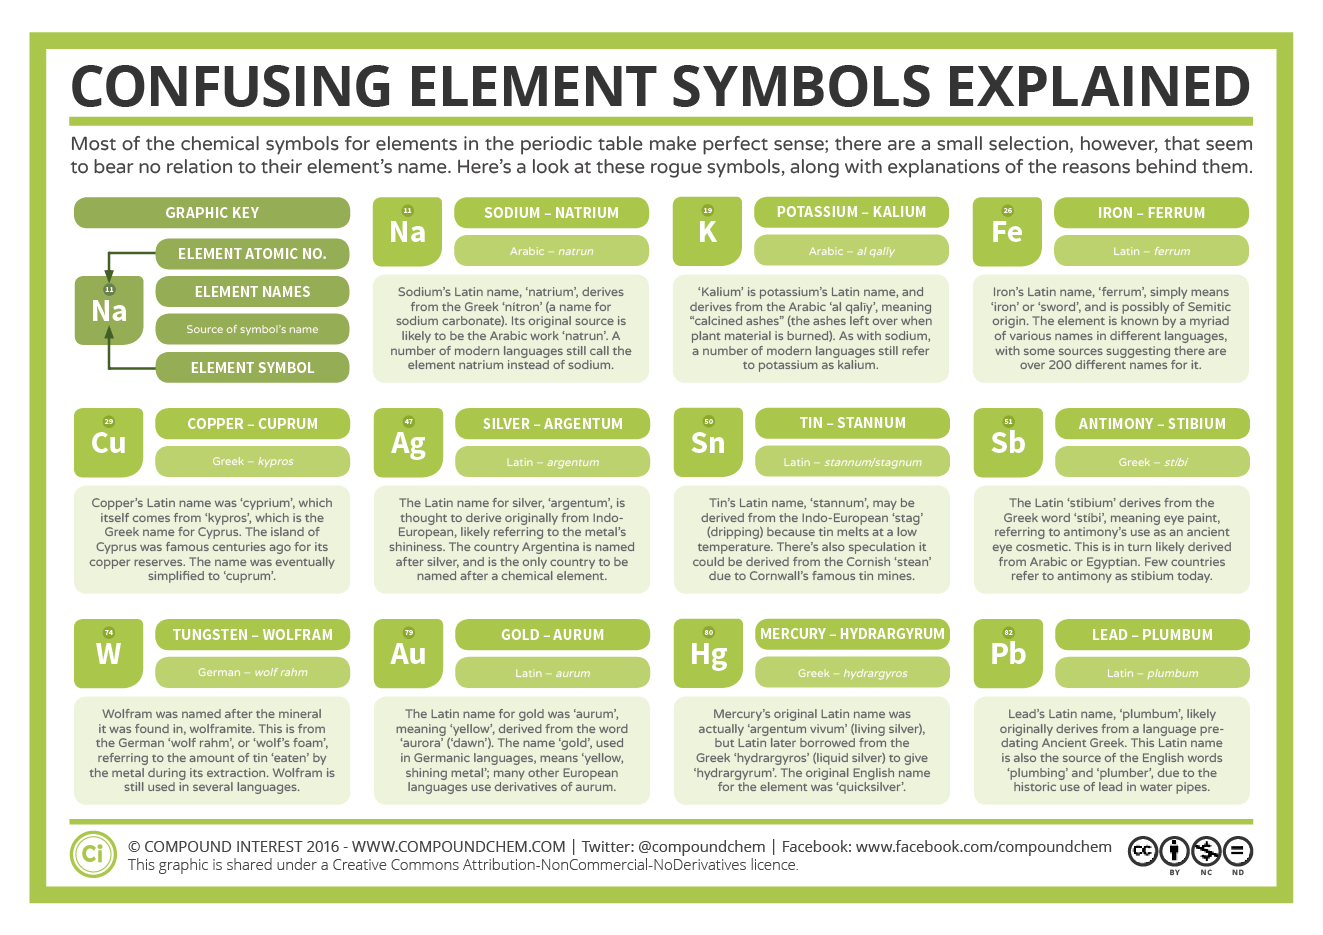 Element oddities 11 confusing chemical symbols explained compound 11 confusing chemical element symbols explained urtaz Gallery